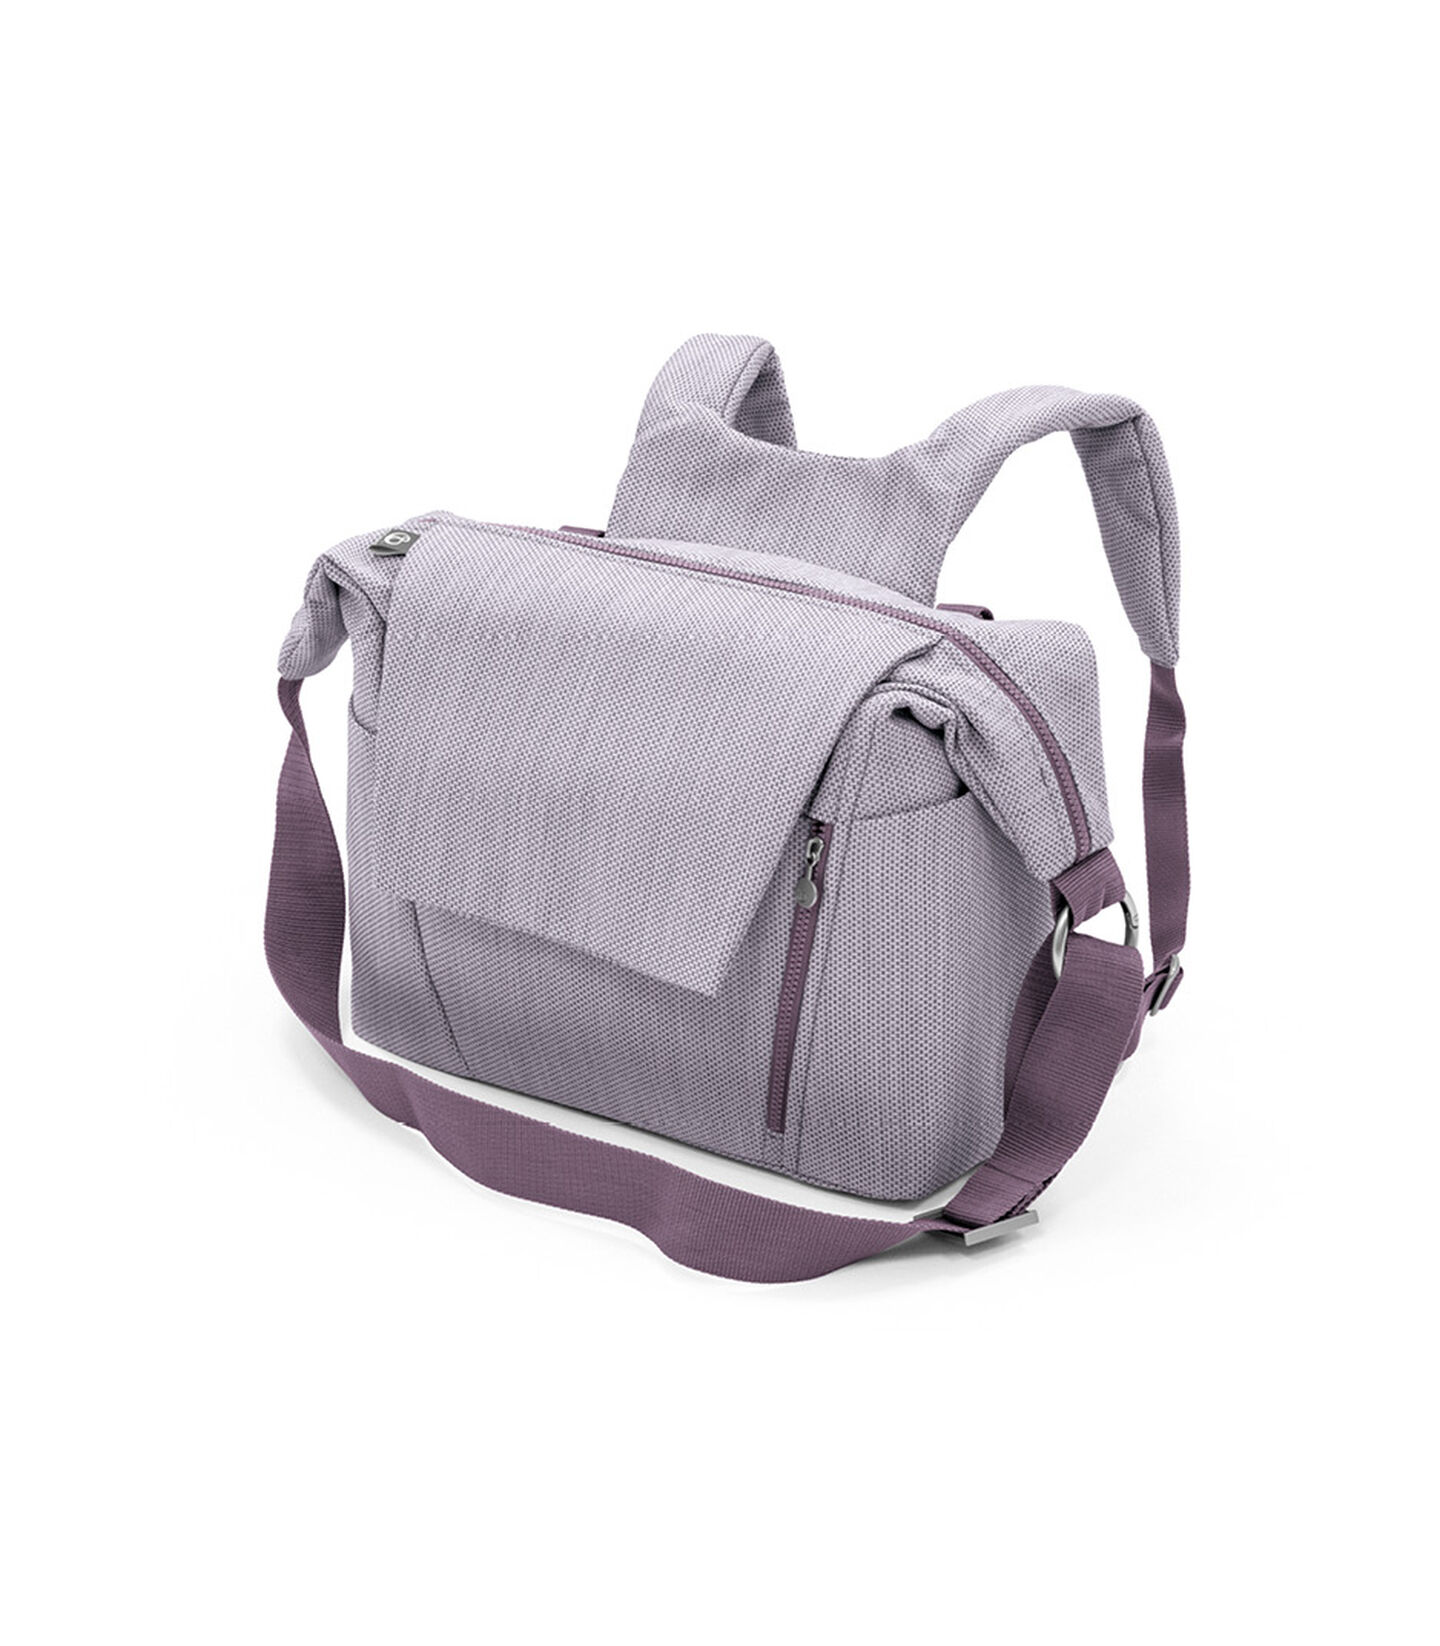 Stokke® Changing bag Brushed Lilac, Brushed Lilac, mainview view 1